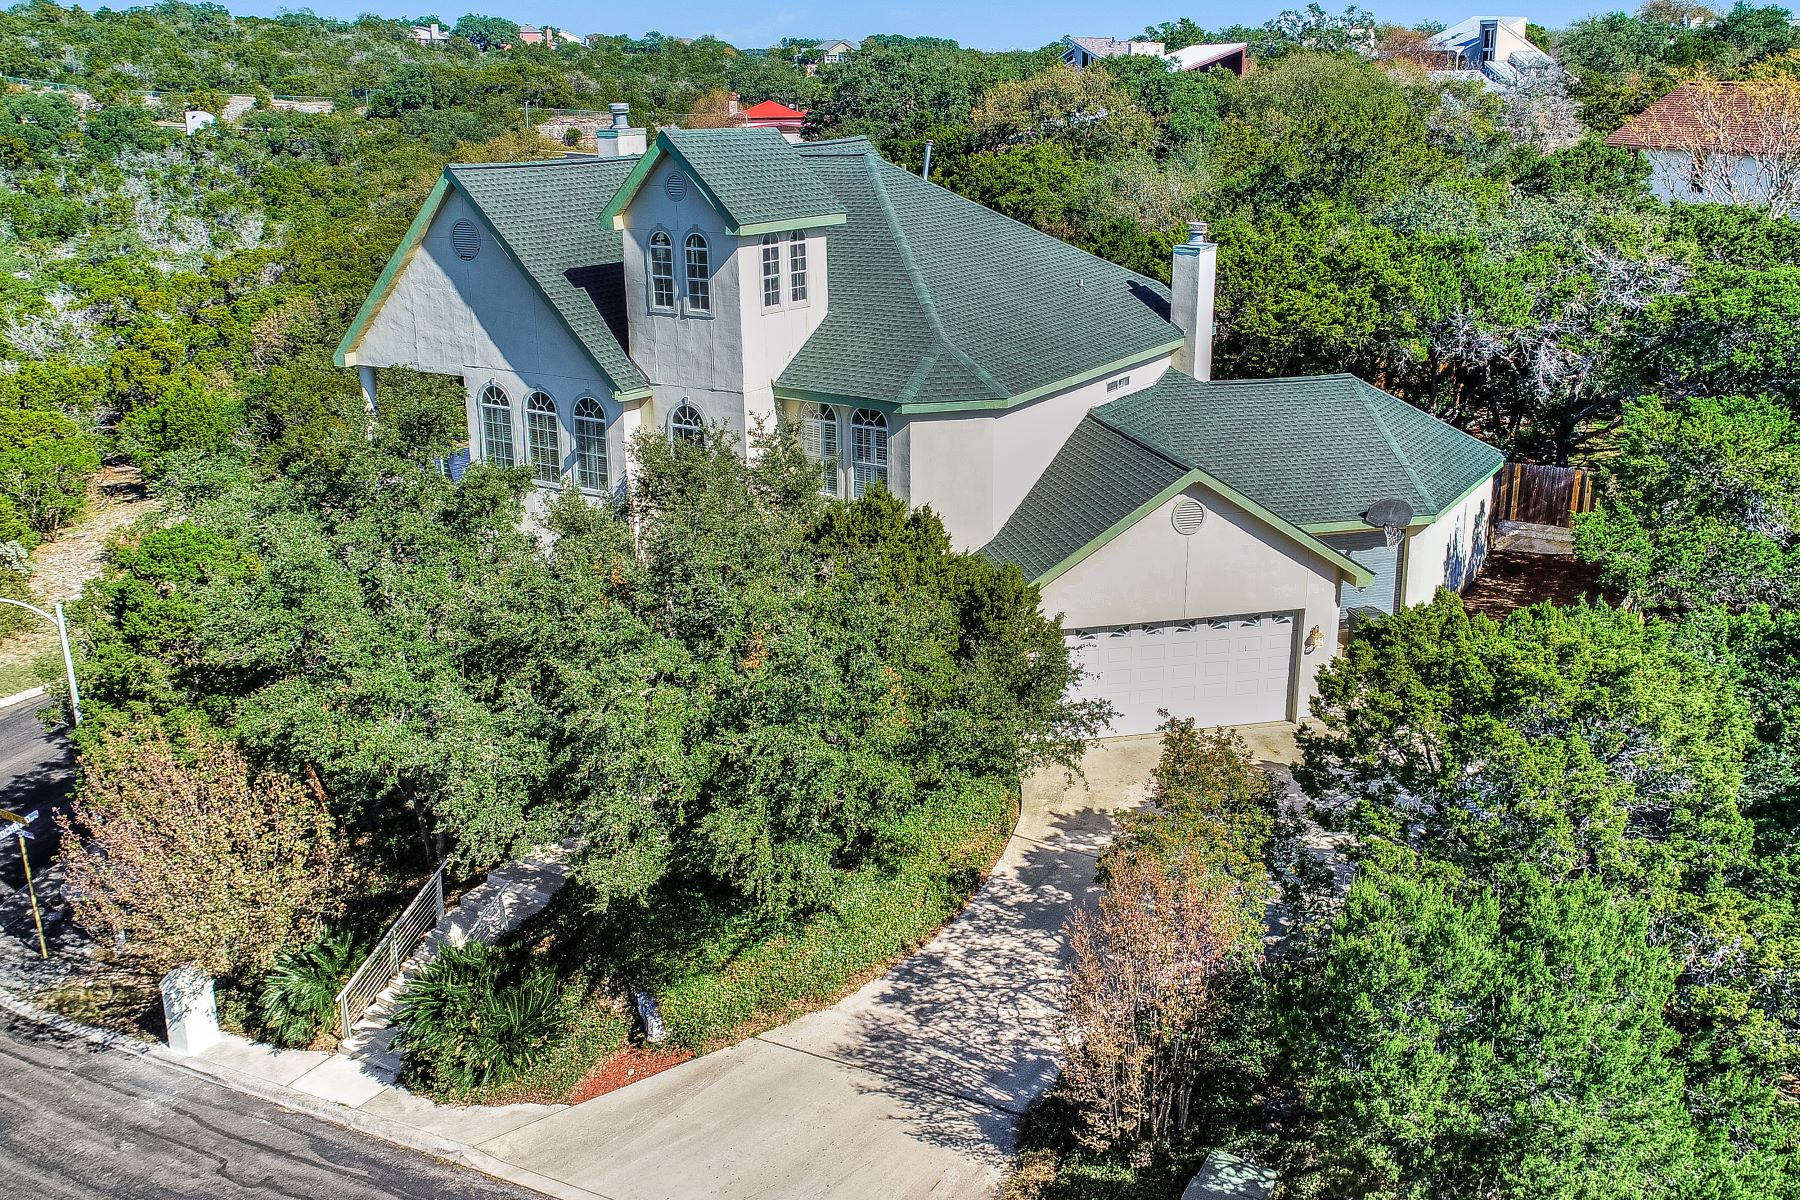 Single Family Homes for Sale at Spectacular Home High on the Hill with views for miles! 16744 Windjammer Helotes, Texas 78023 United States